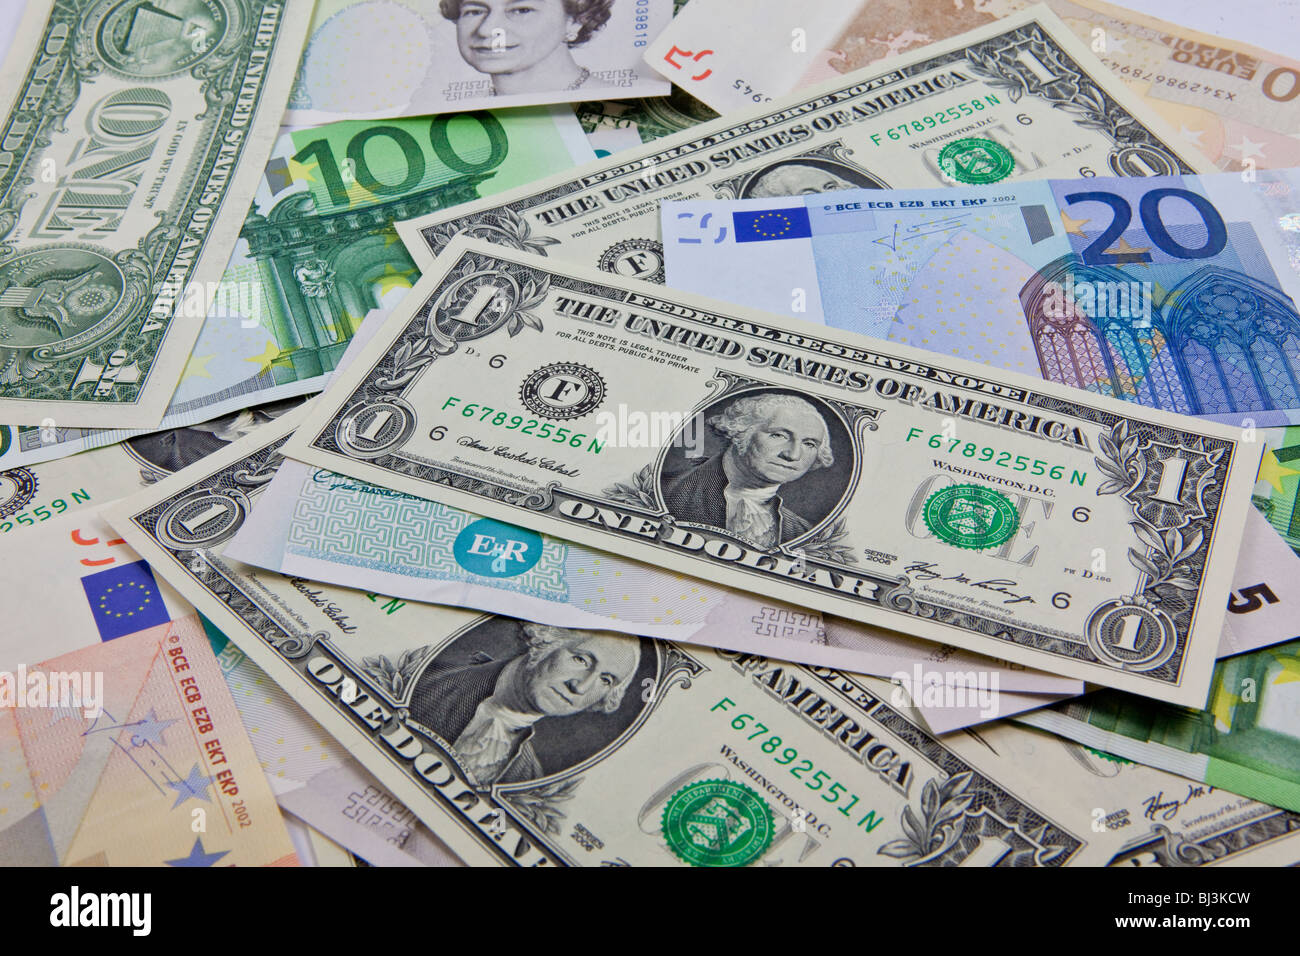 A mixture of bank notes, U.S. dollars, euros and British pounds Stock Photo